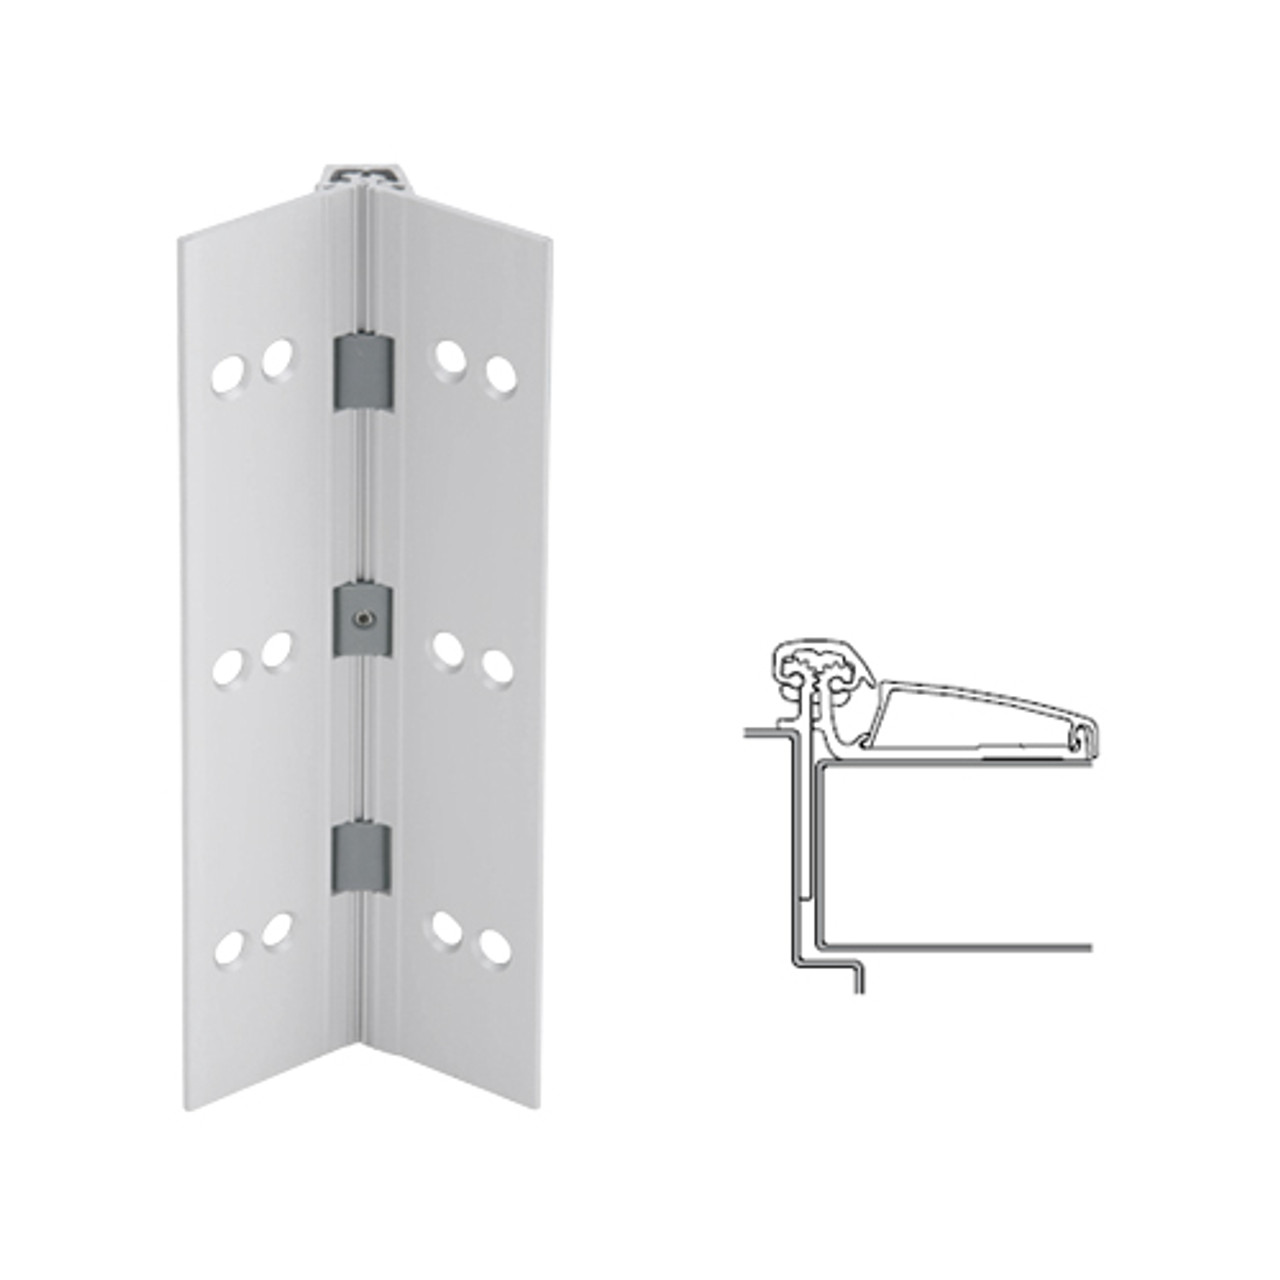 045XY-US28-120-WD IVES Adjustable Half Surface Continuous Geared Hinges with Wood Screws in Satin Aluminum